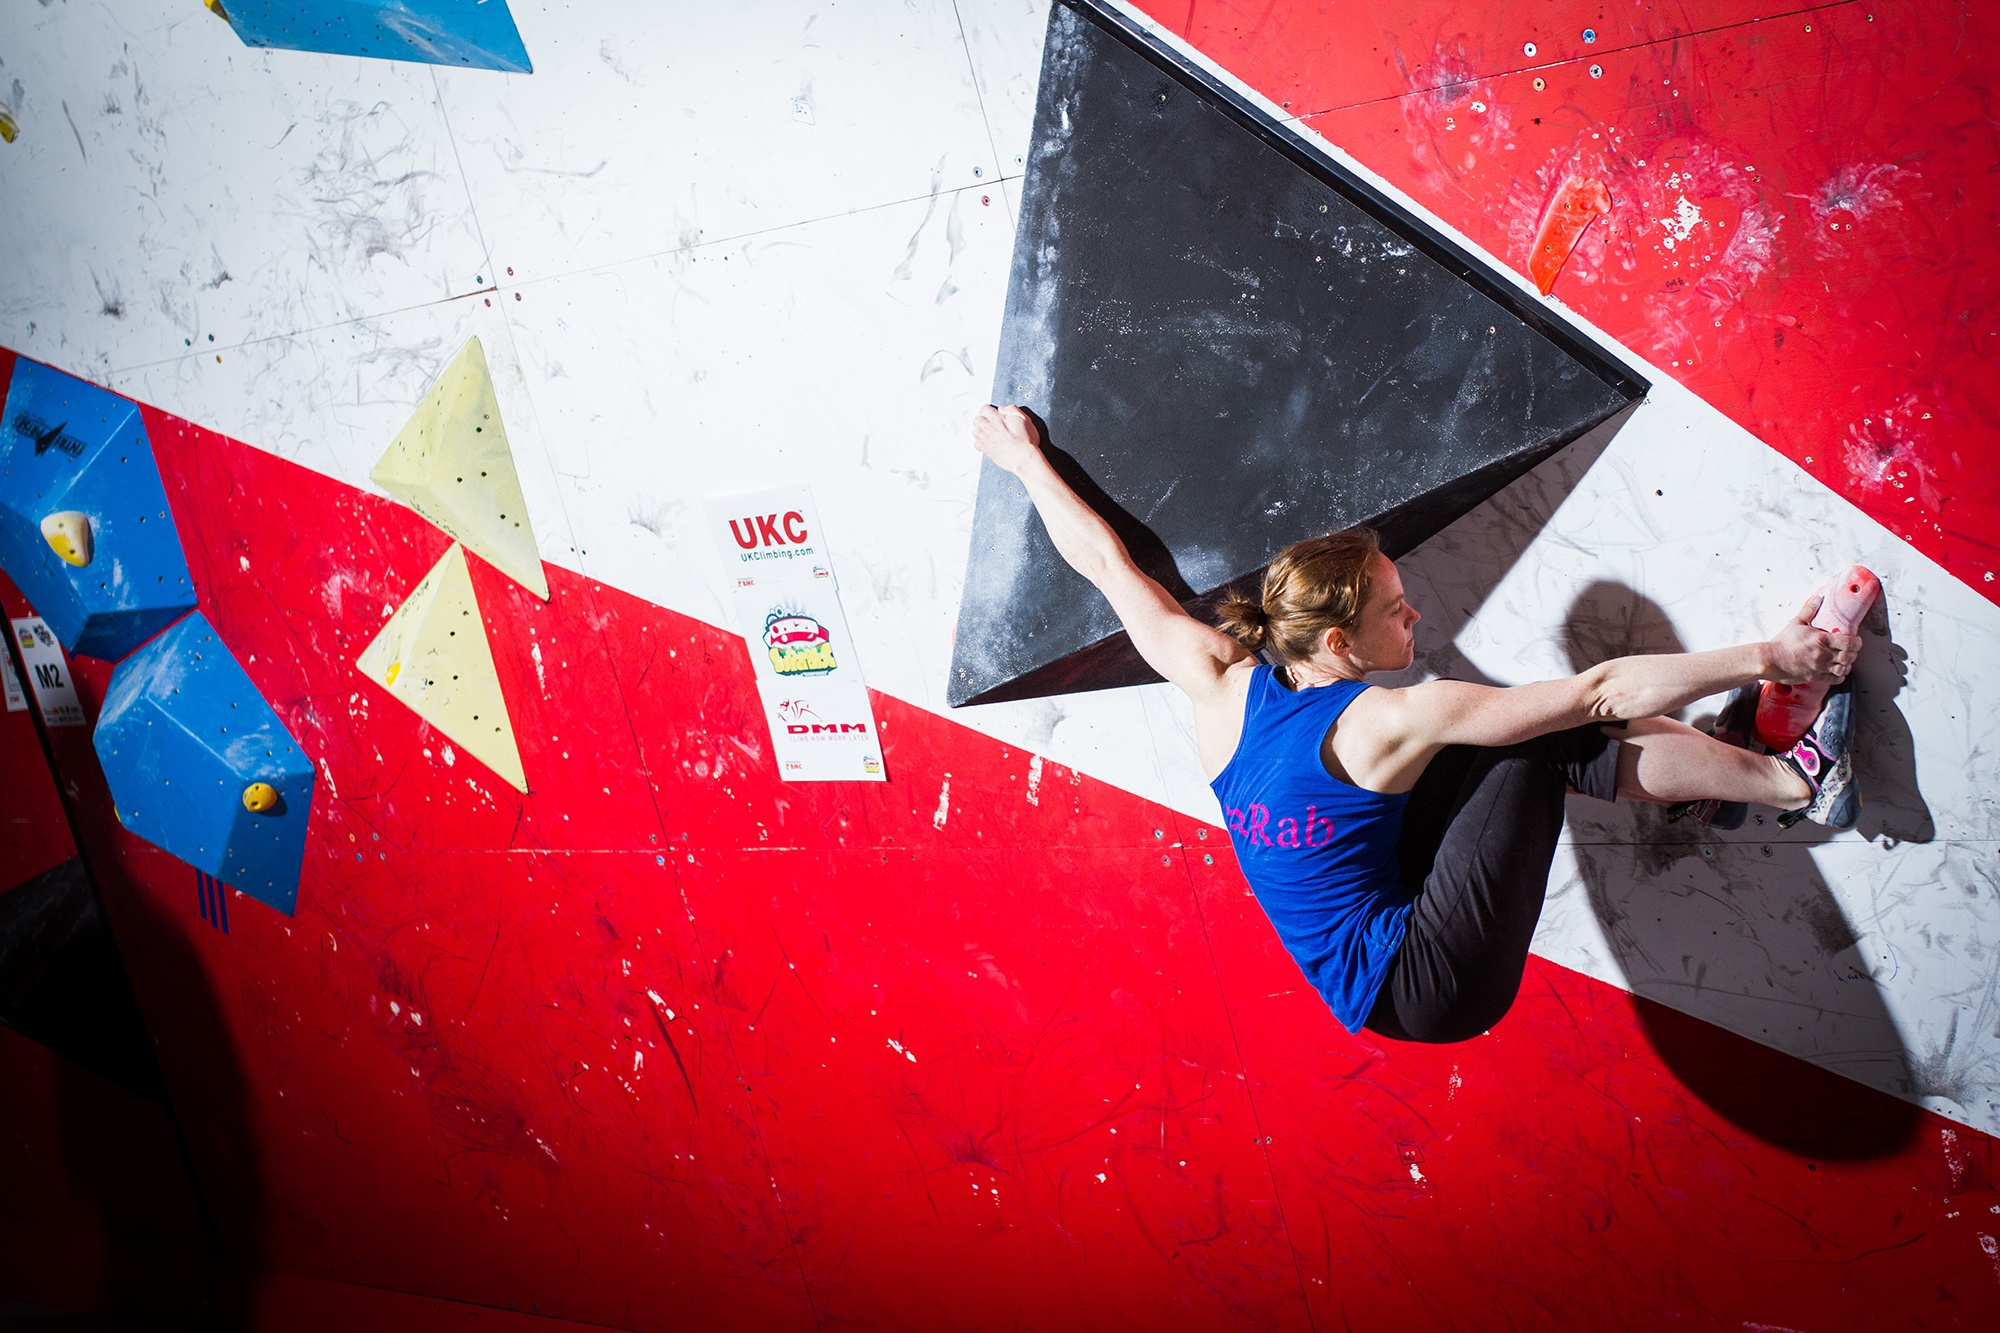 A climber attempts the bouldering at the British Bouldering Championships